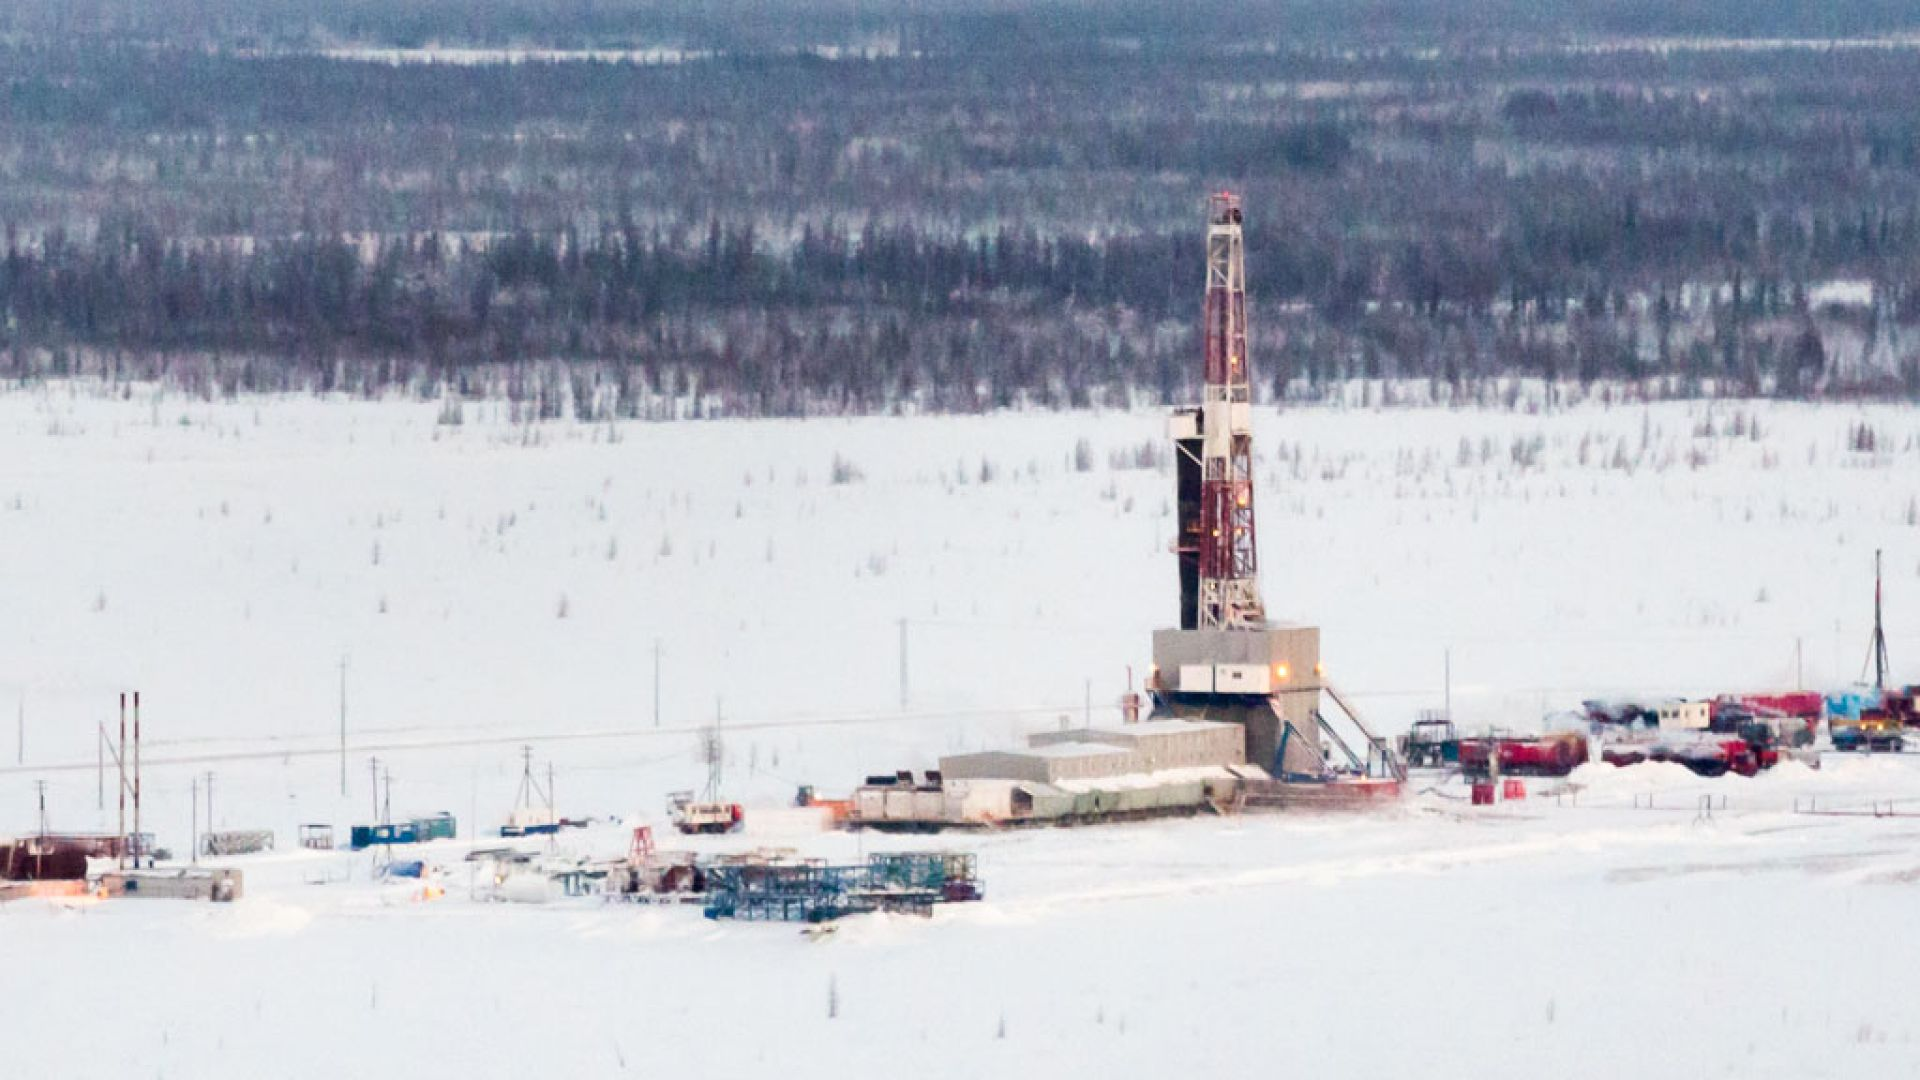 Wintershall Dea Russia production site Novy Urengoy